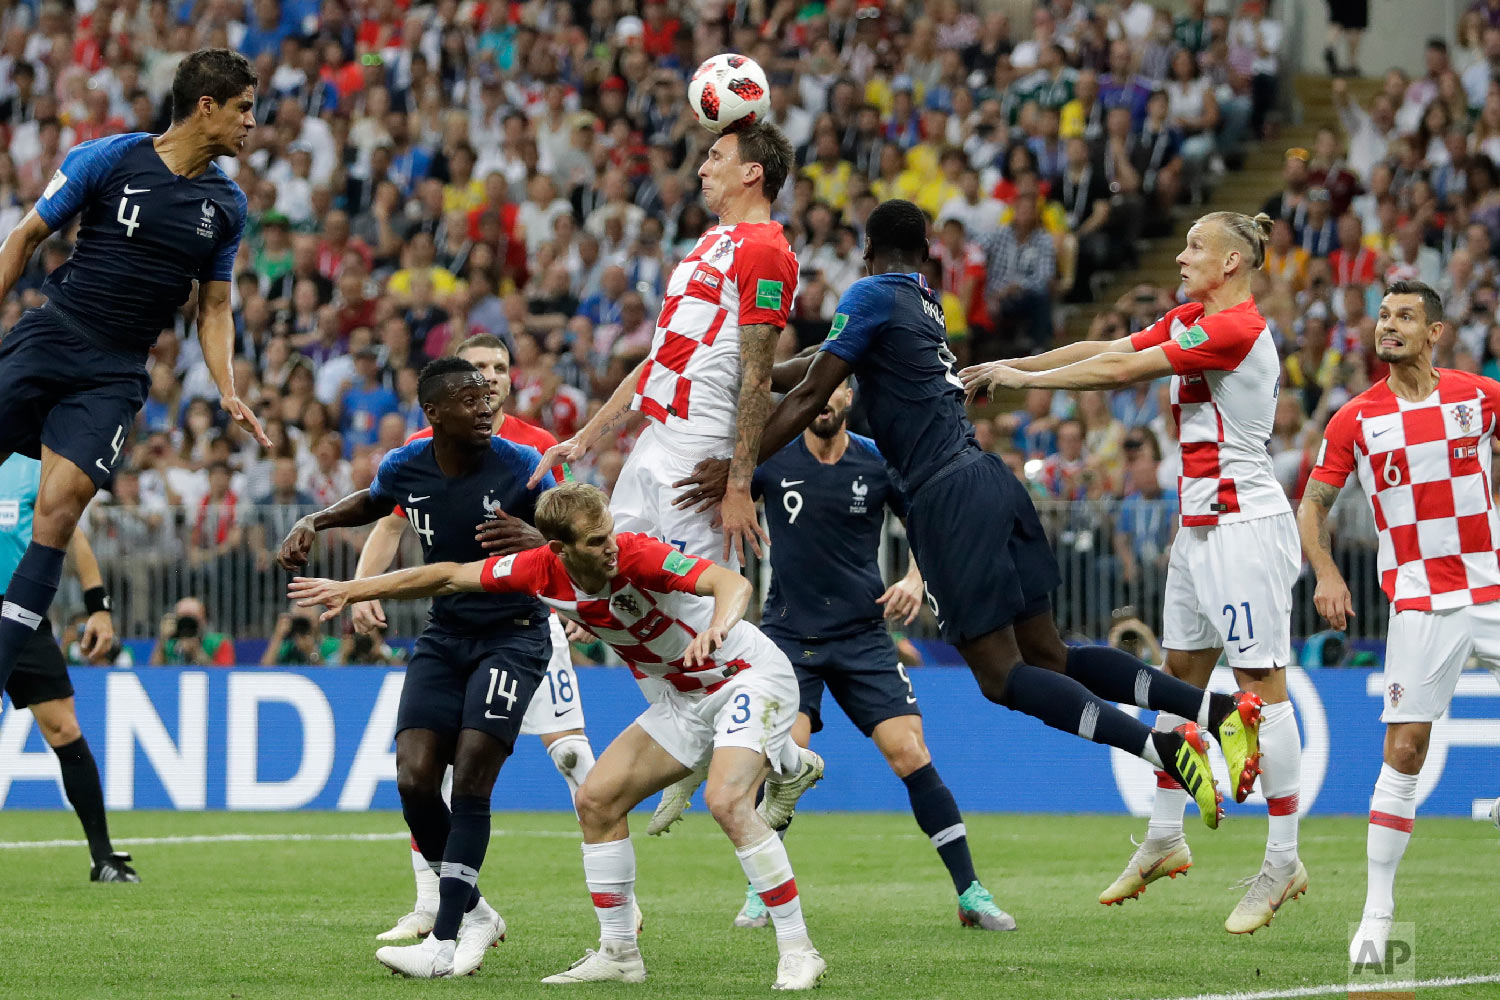 Croatia's Mario Mandzukic, center, scores an own goal during the final match between France and Croatia at the 2018 soccer World Cup in the Luzhniki Stadium in Moscow, Russia, Sunday, July 15, 2018. (AP Photo/Matthias Schrader)